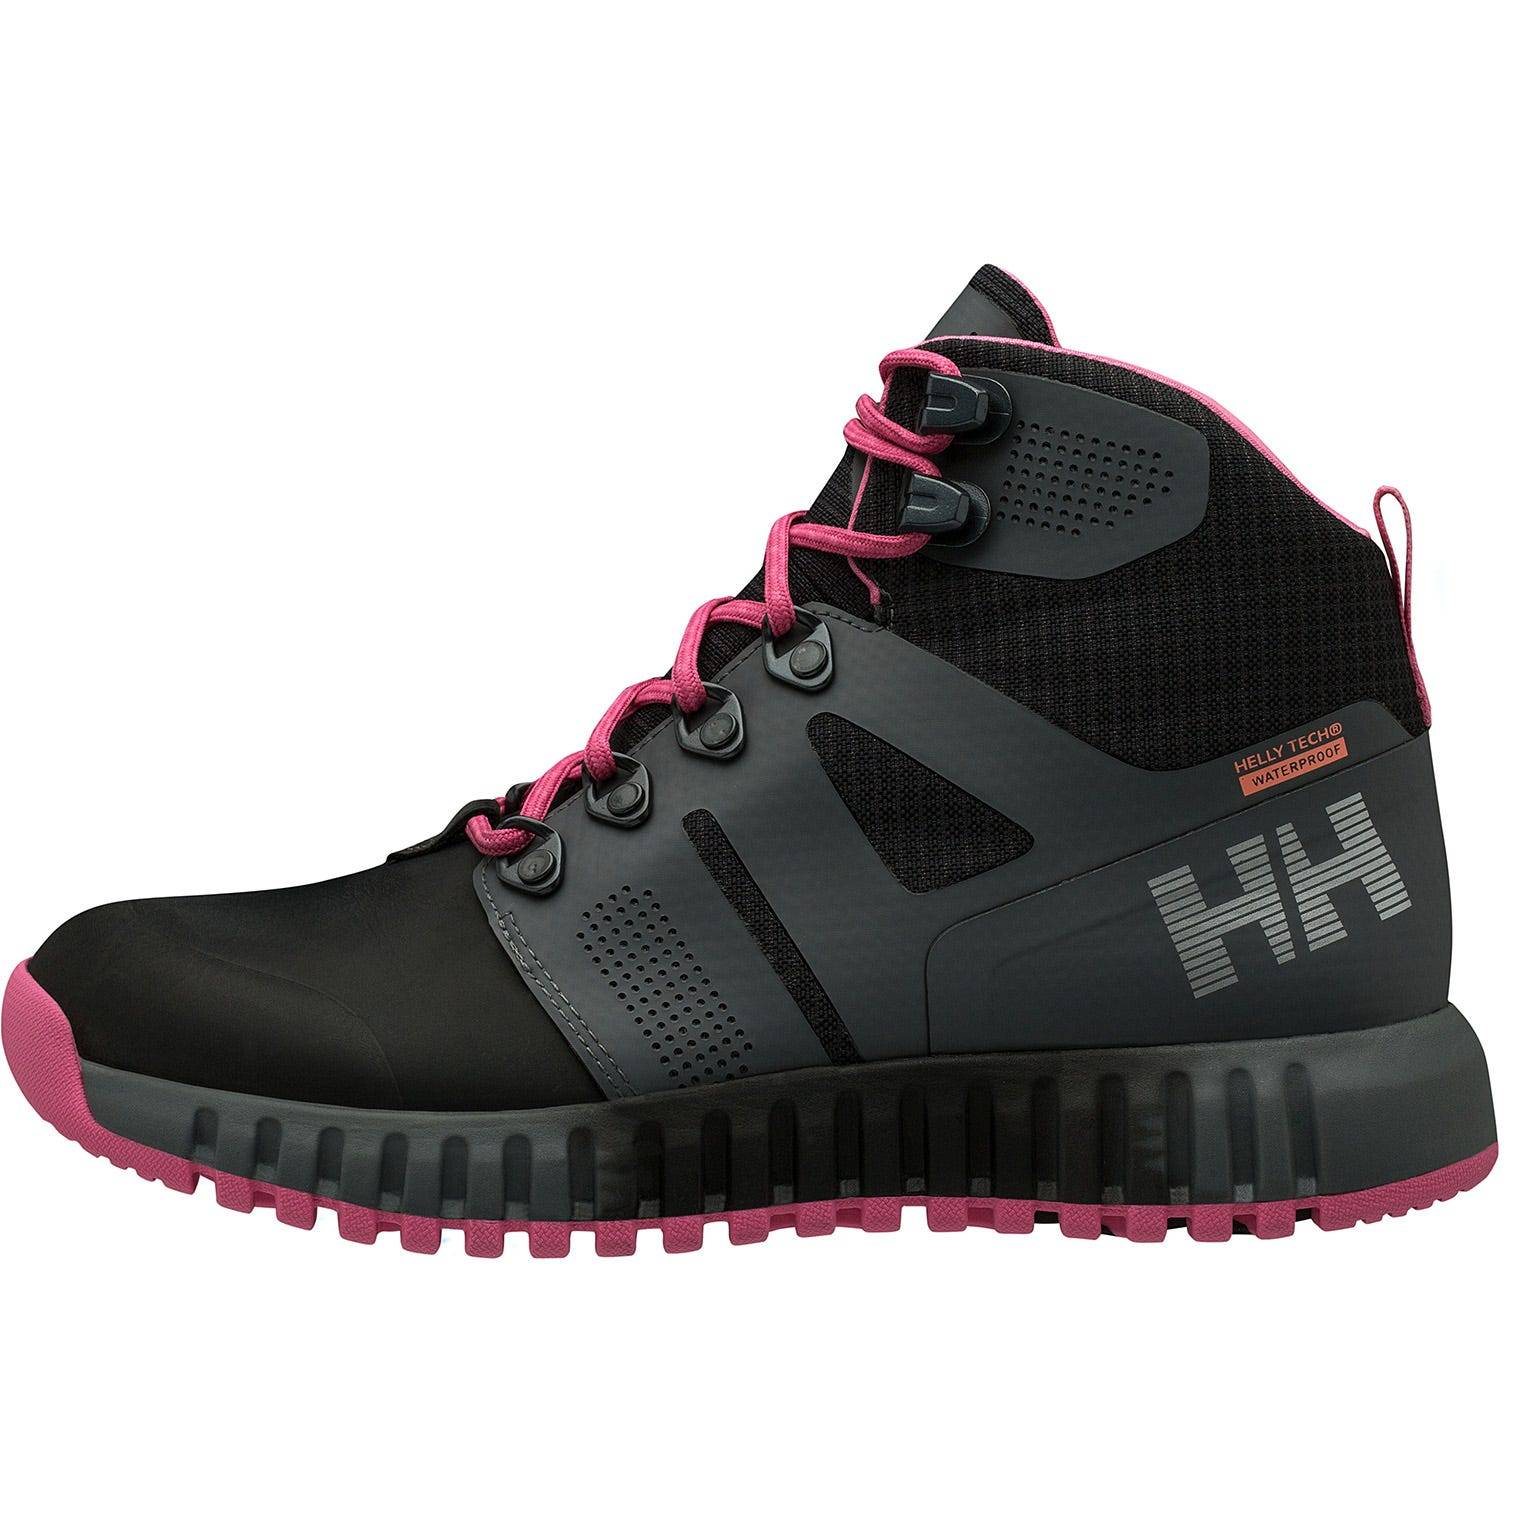 Helly Hansen W Vanir Gallivant Ht Womens Hiking Boot Black 37.5/6.5